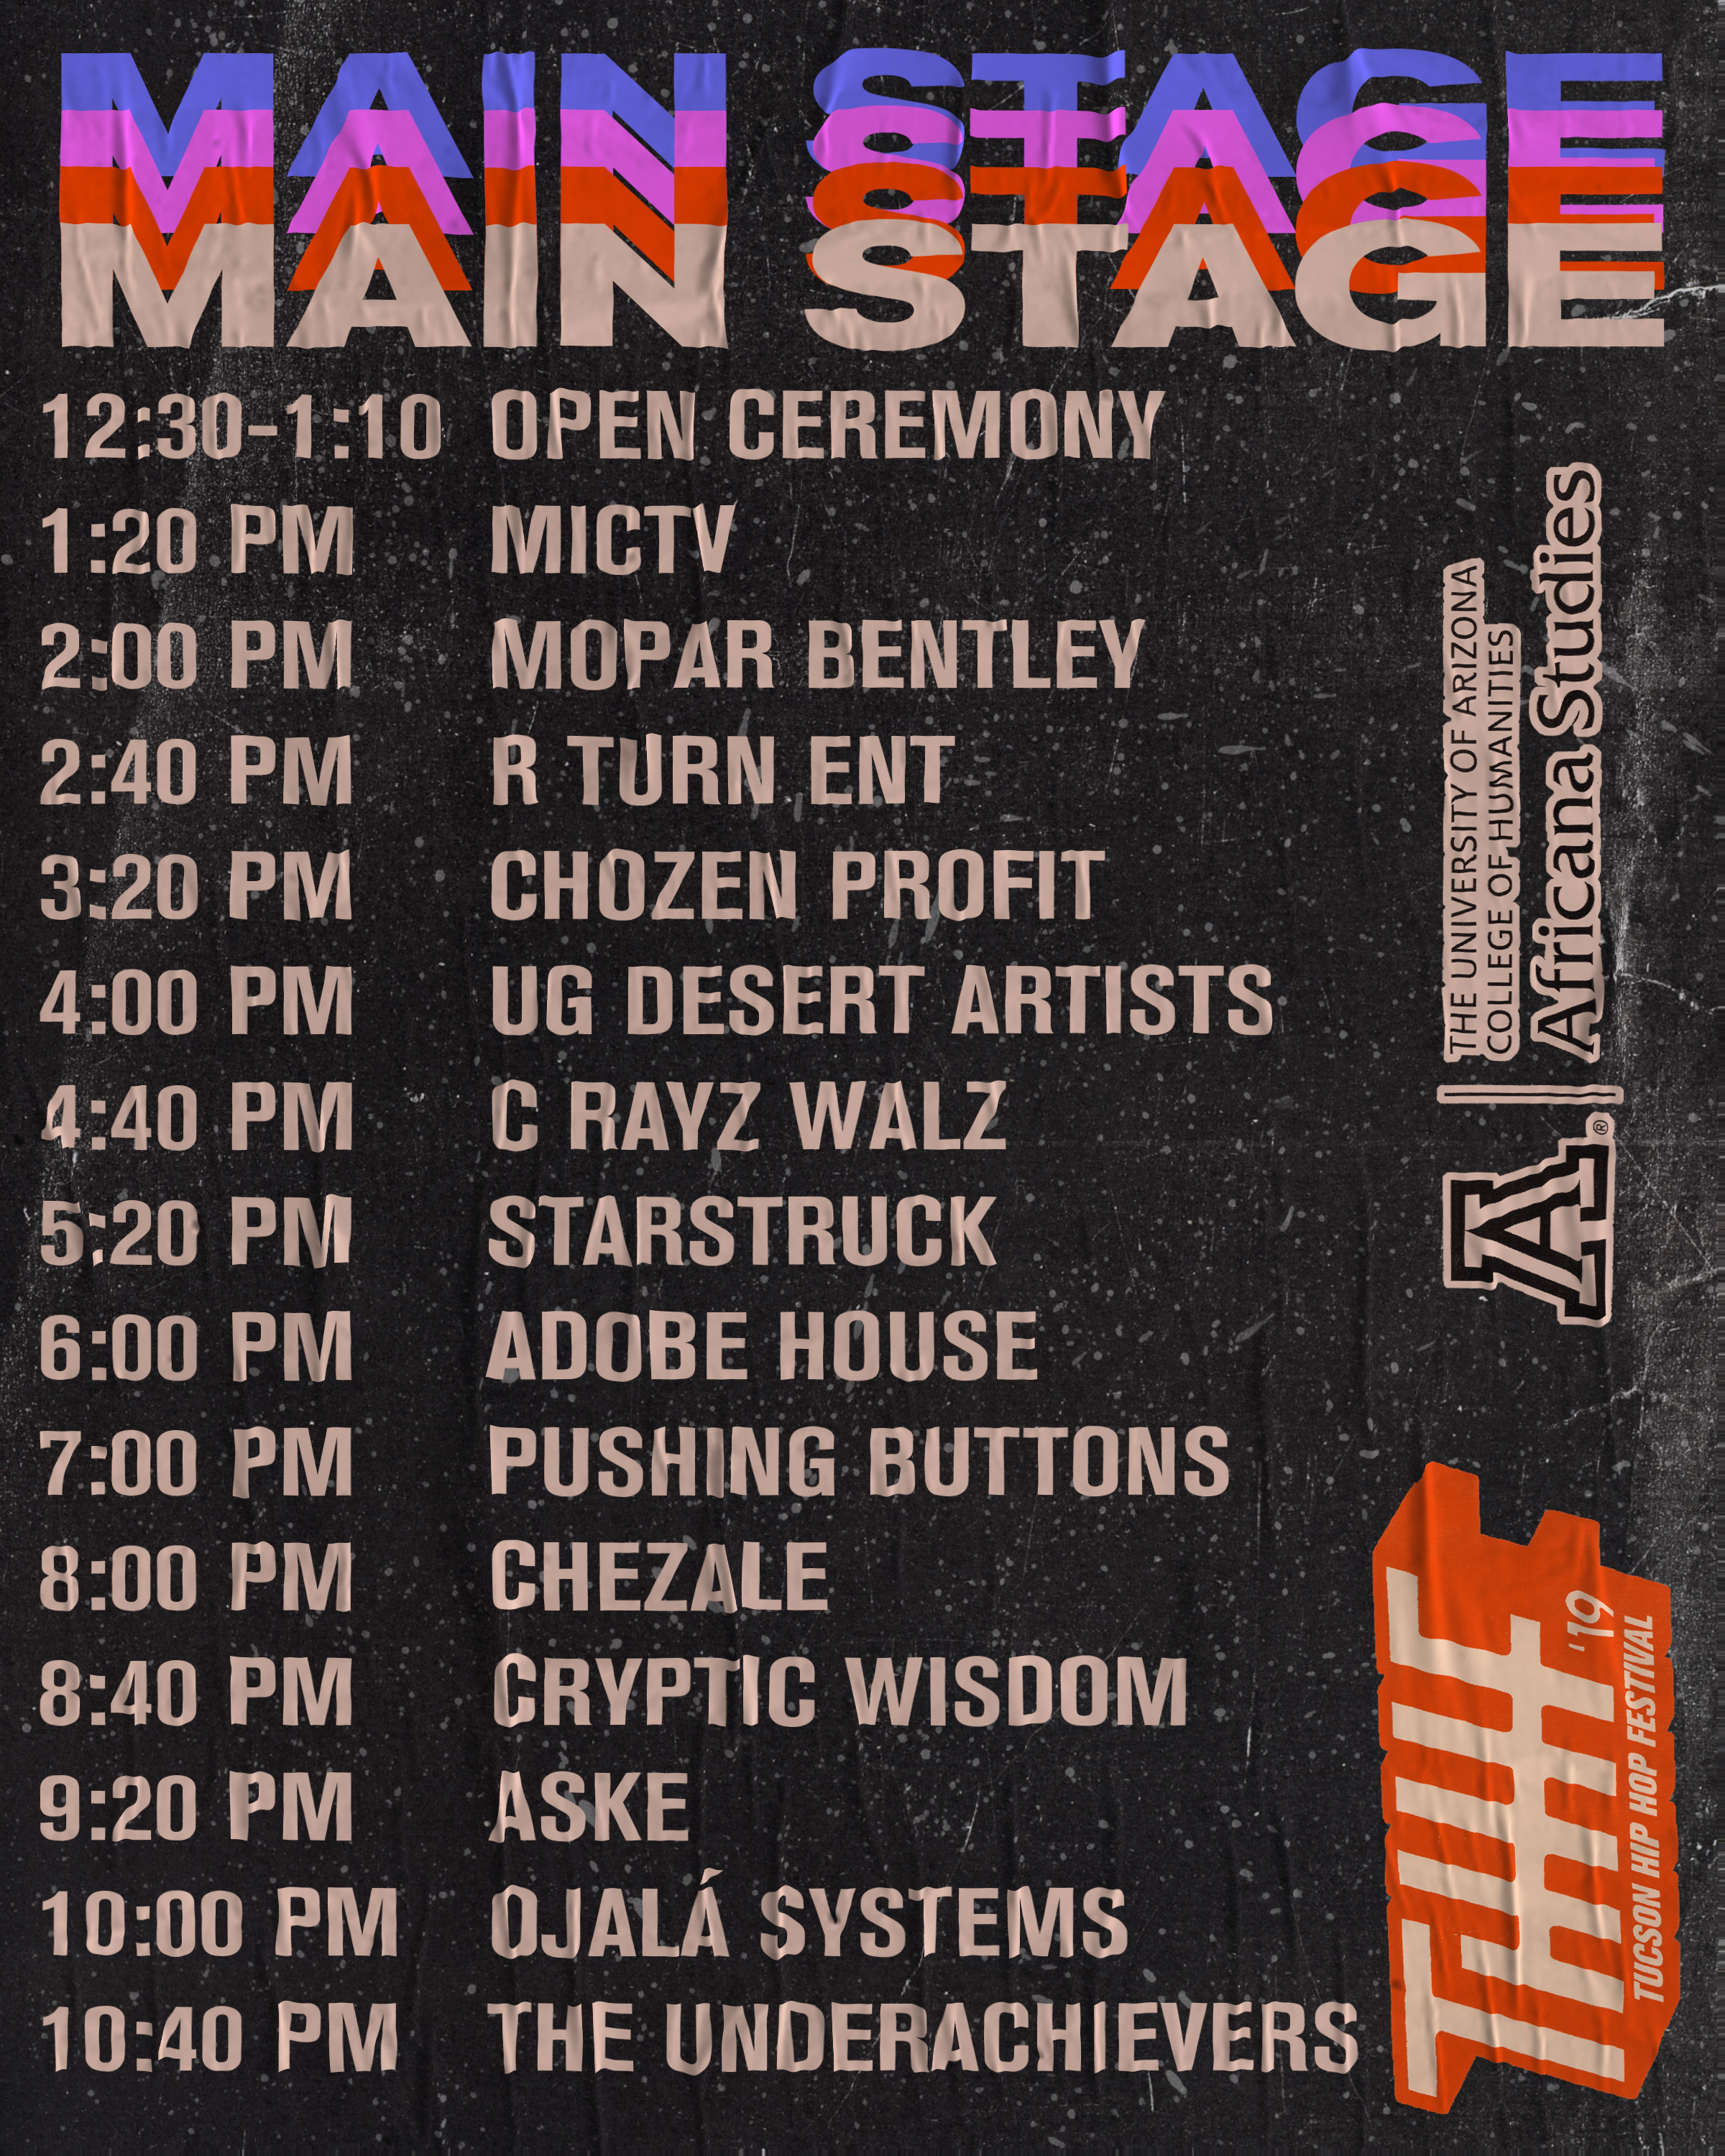 MAIN STAGE set times.jpg